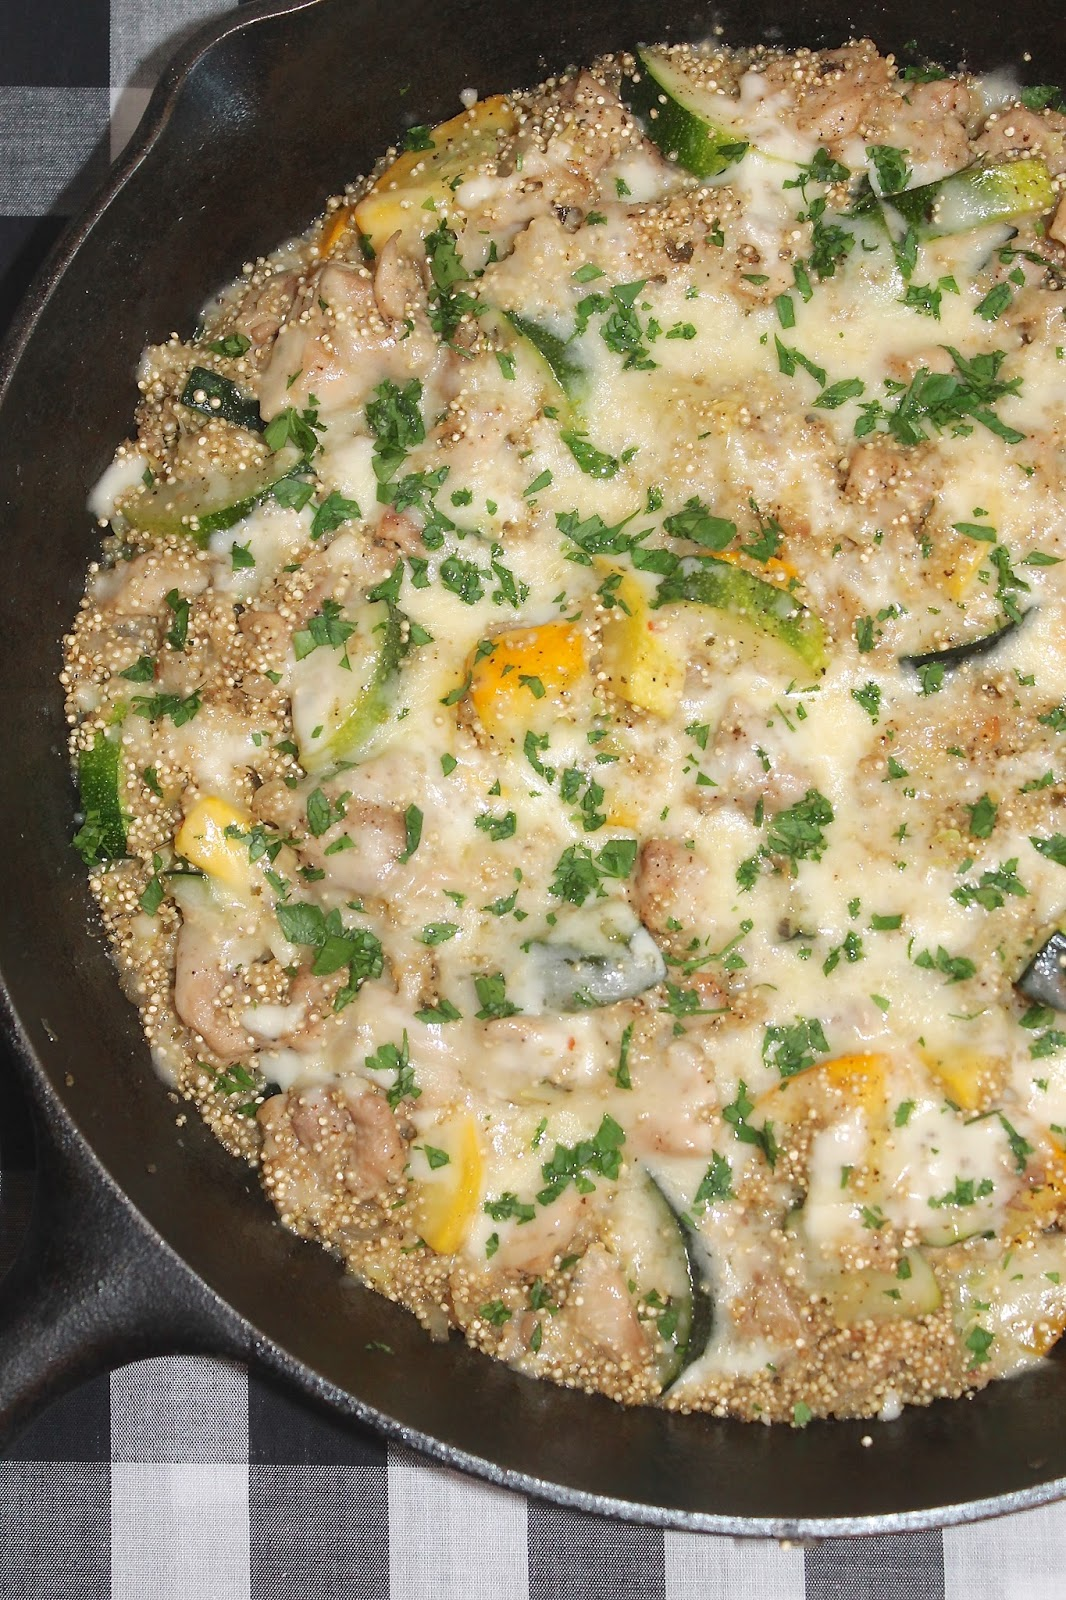 Savory Moments: Skillet chicken and summer squash quinoa